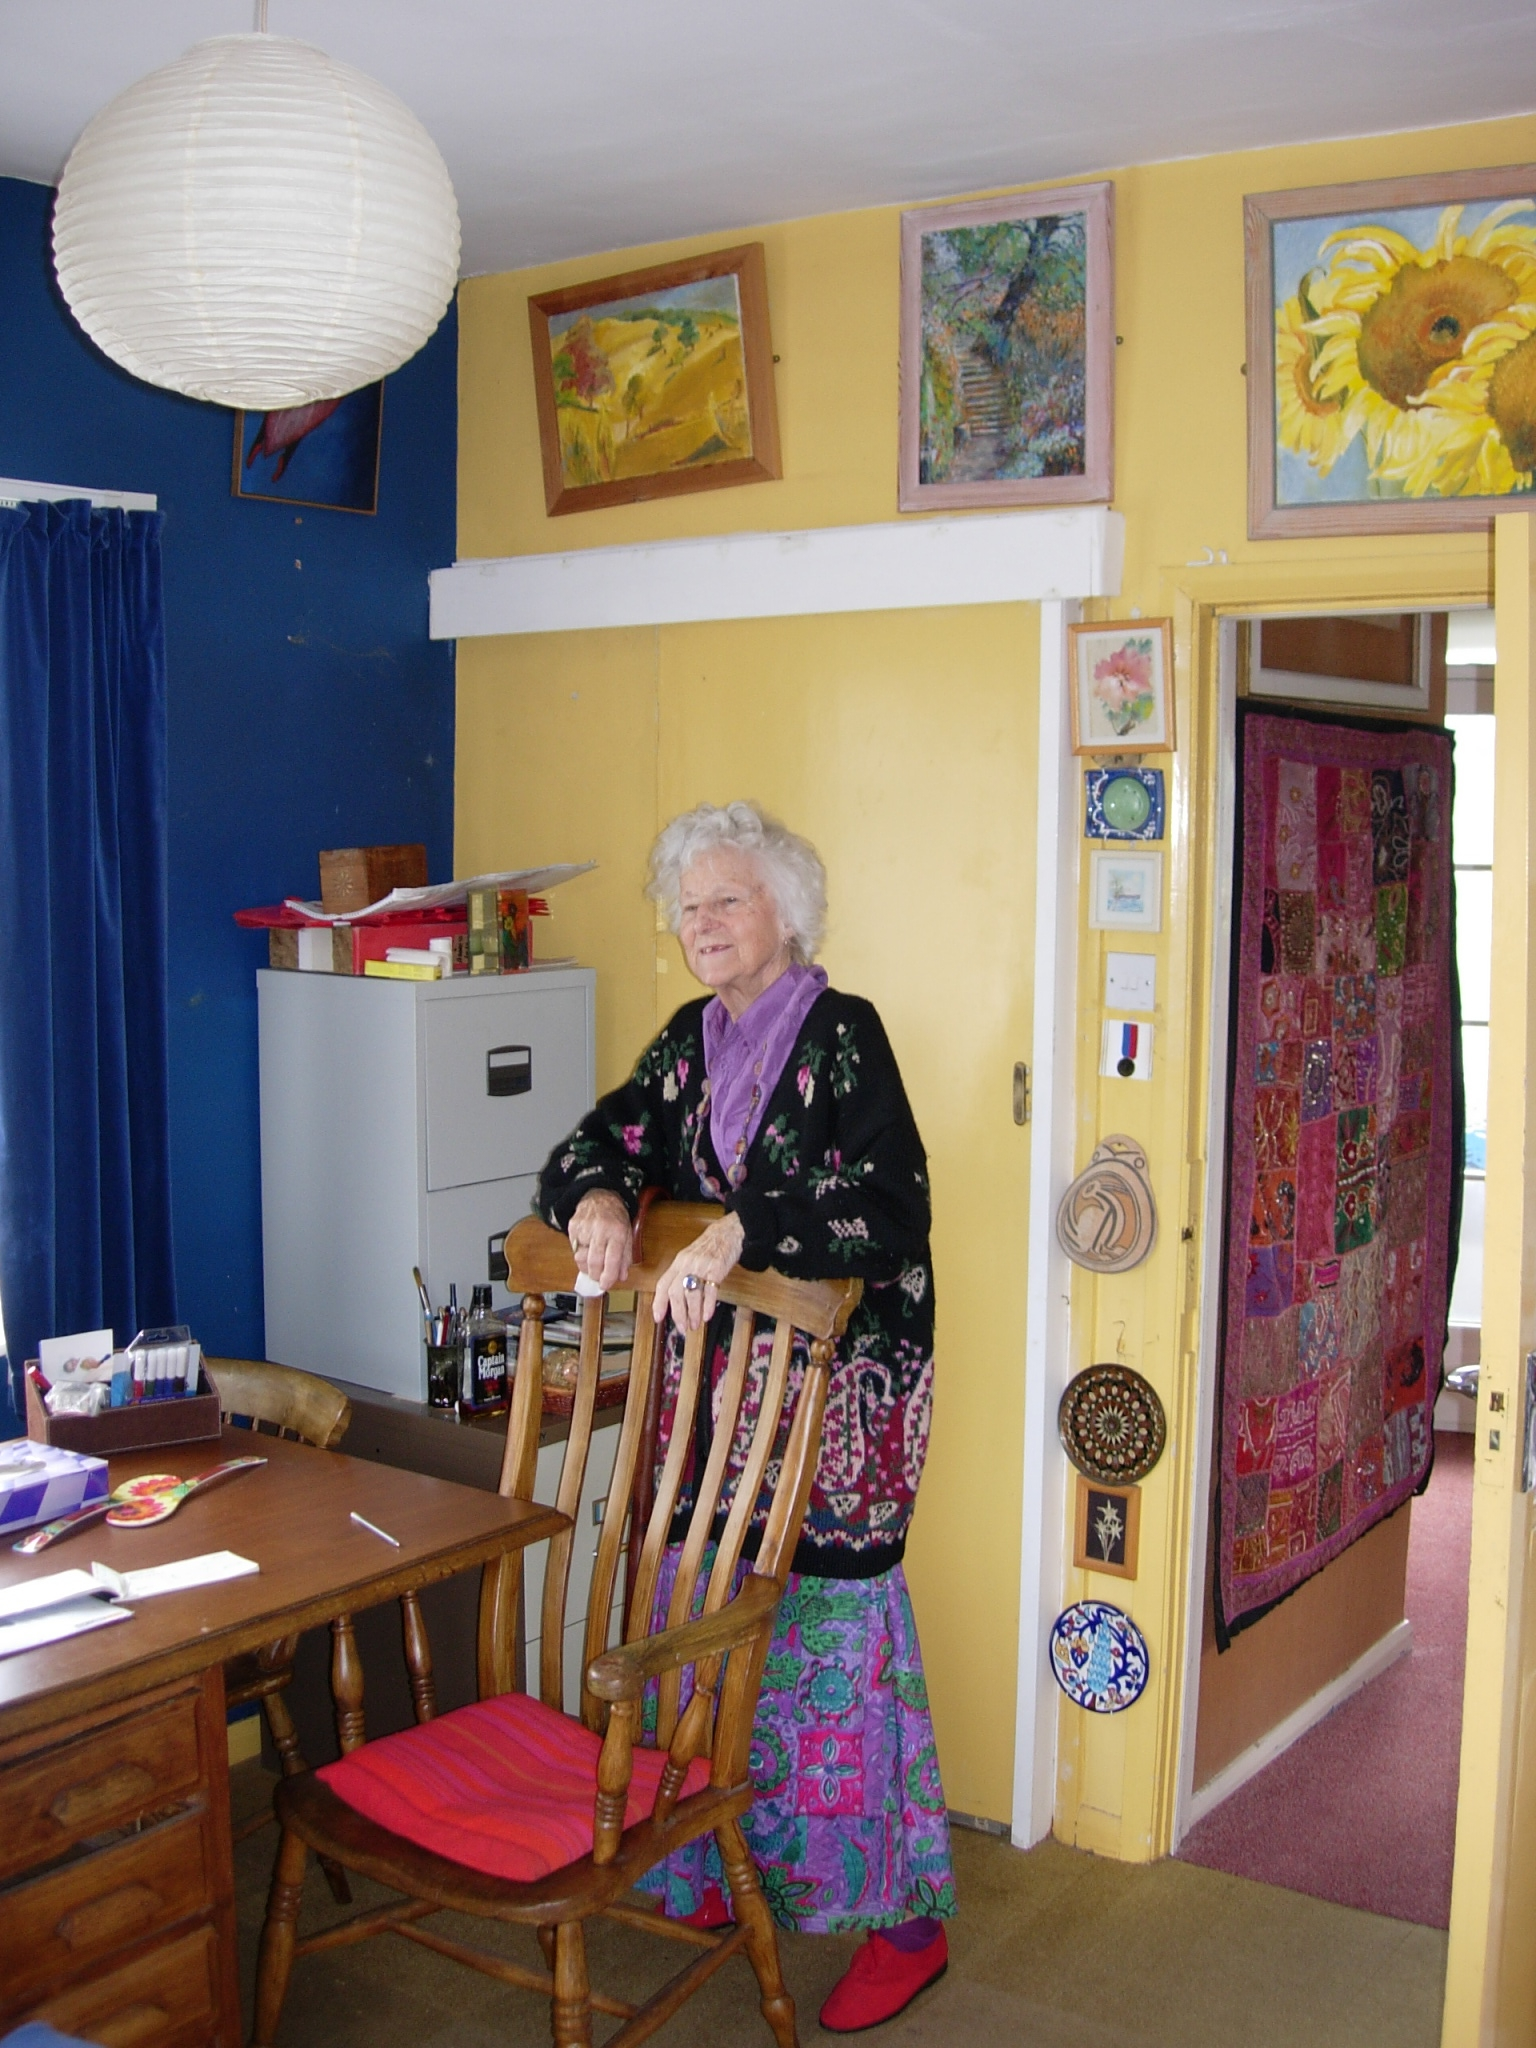 Dora Hurst with her pictures, Penarth, 13 August 2007